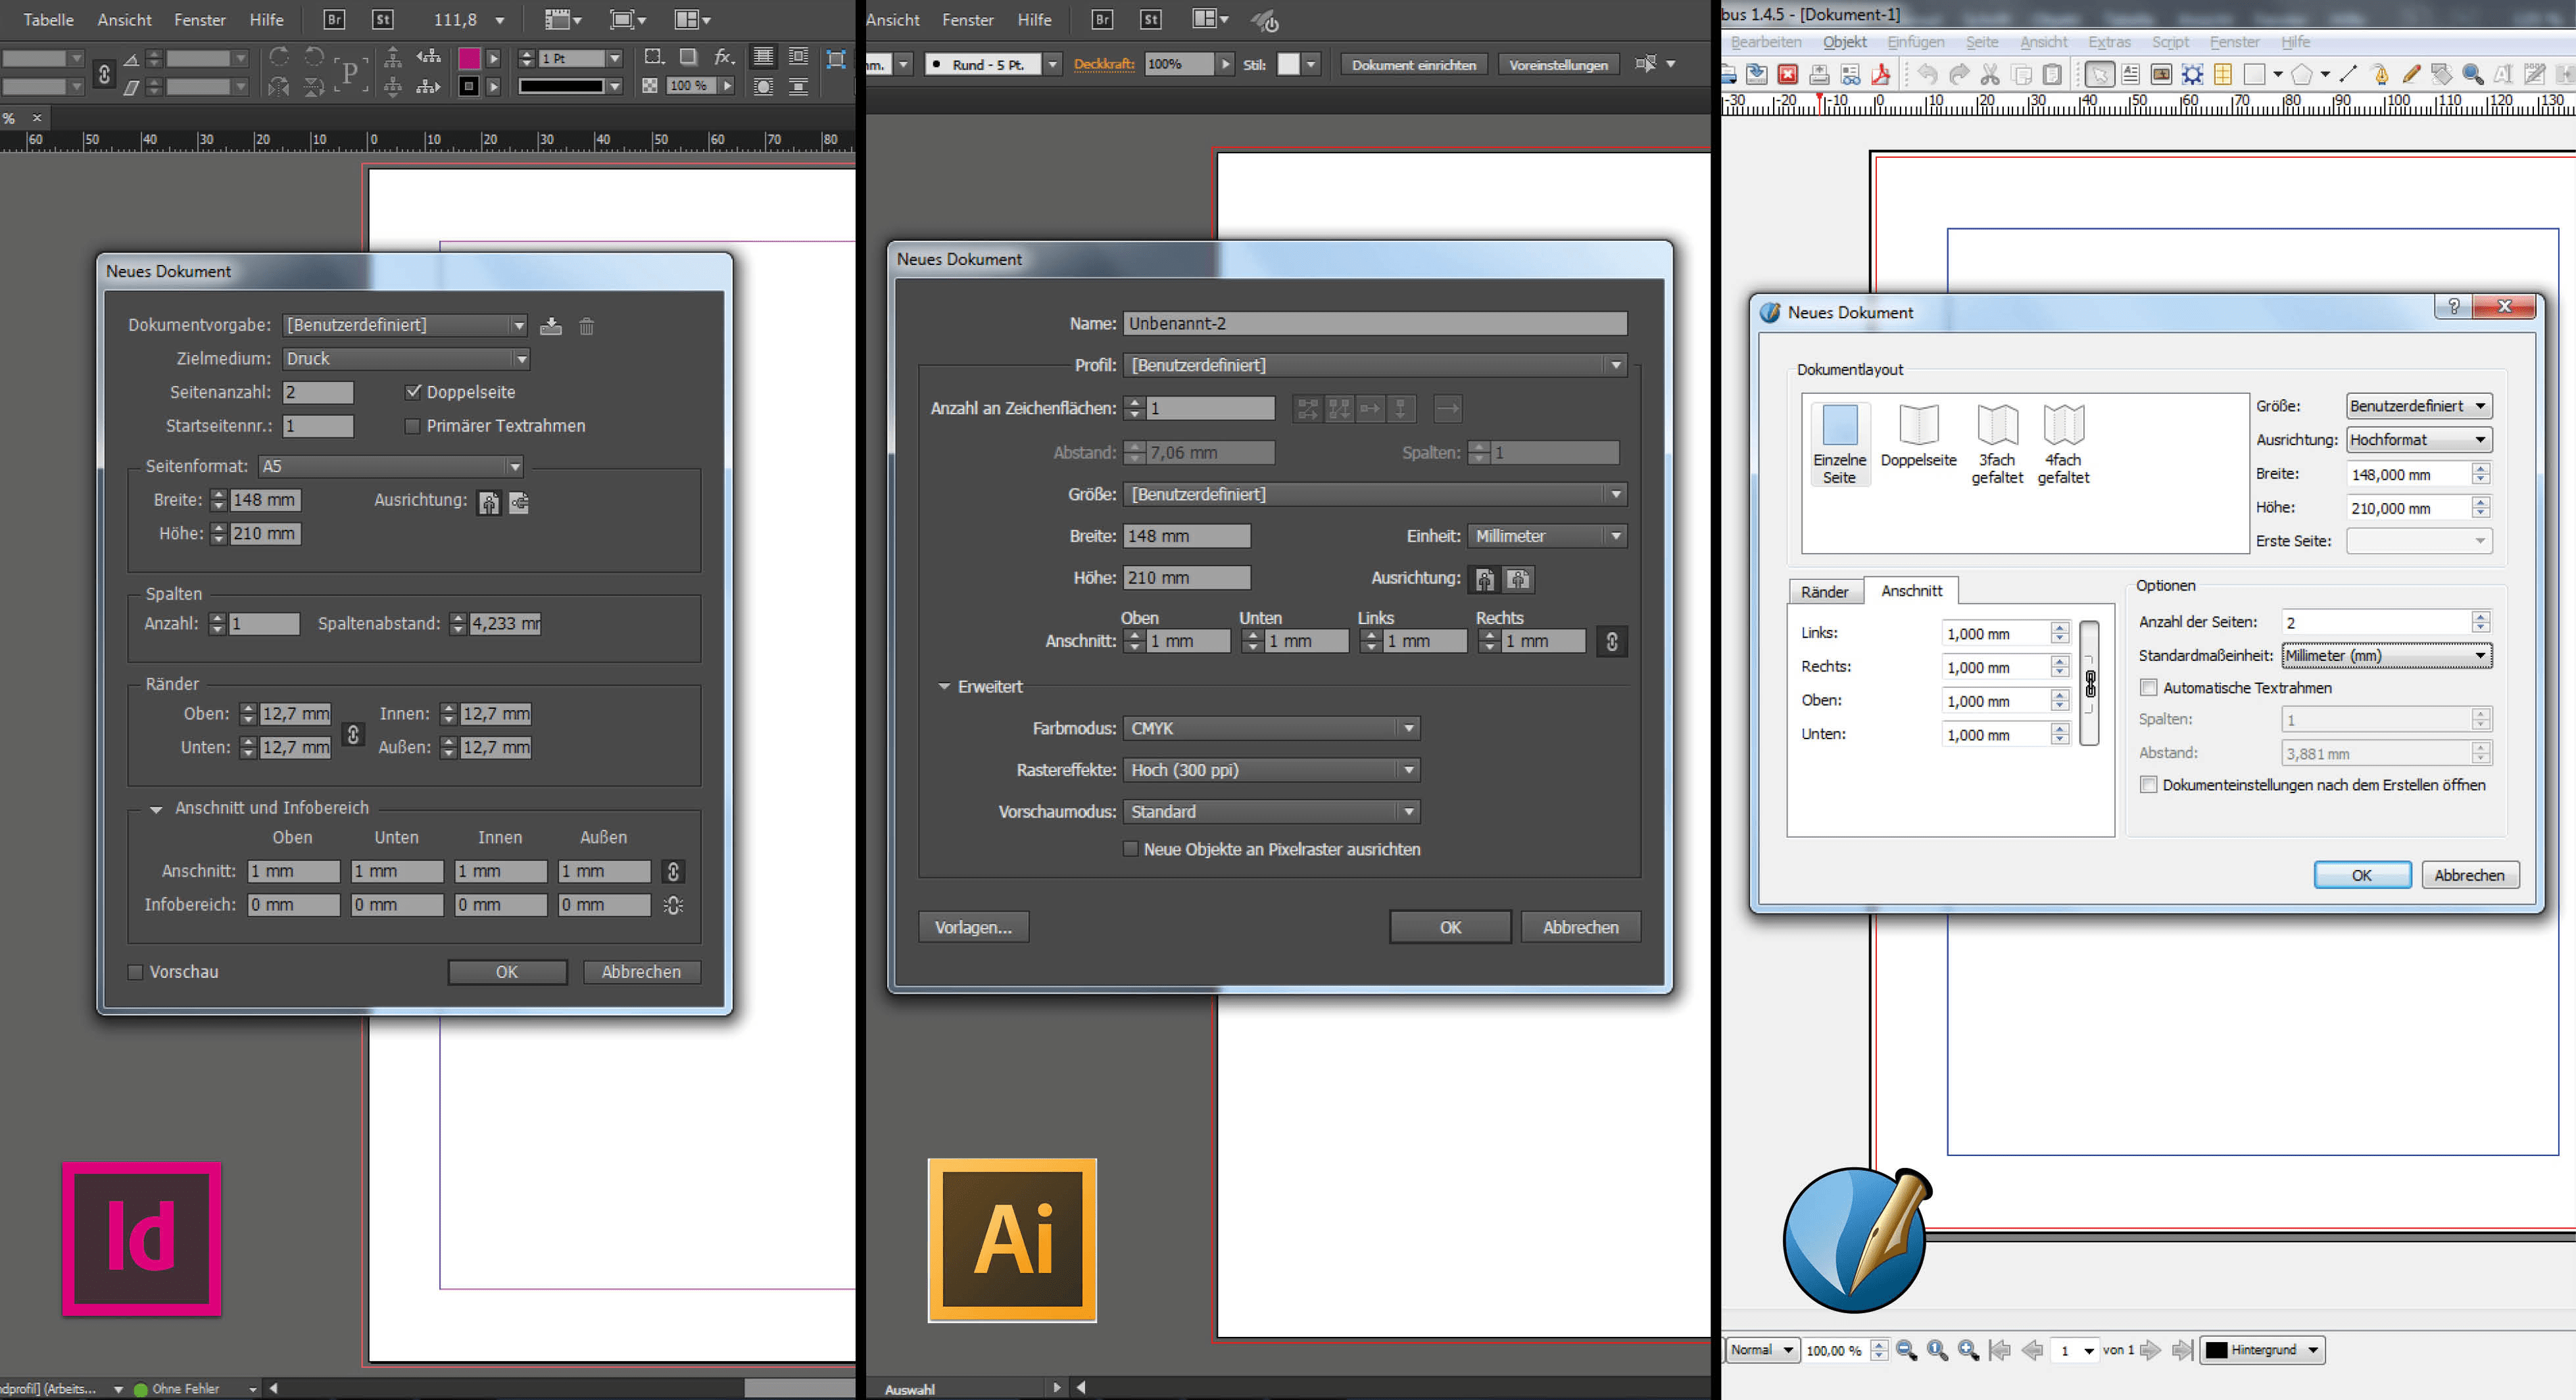 Tutorial Beschnittzugabe Anlegen In Indesign Cc